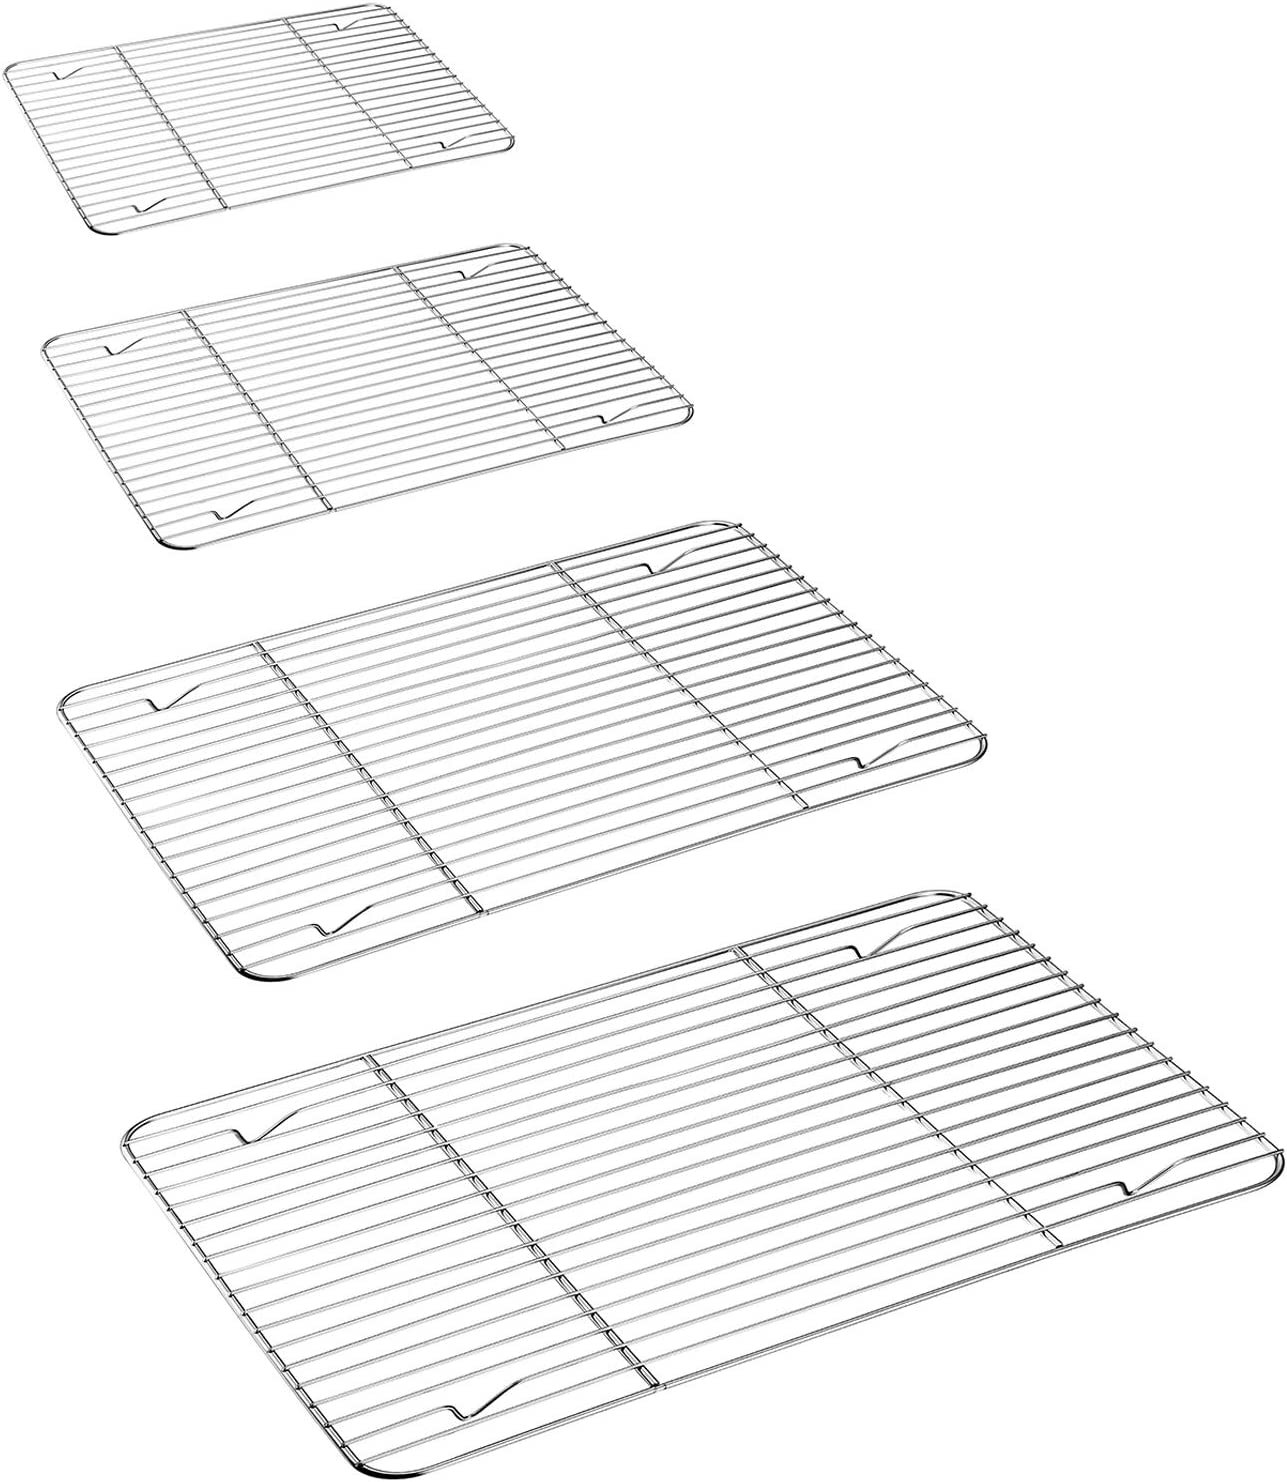 P&P CHEF Cooling Rack Set for Baking Cooking Roasting Oven Use, 4-Piece Stainless Steel Grill Racks, Fit Various Size Cookie Sheets - Oven & Dishwasher Safe